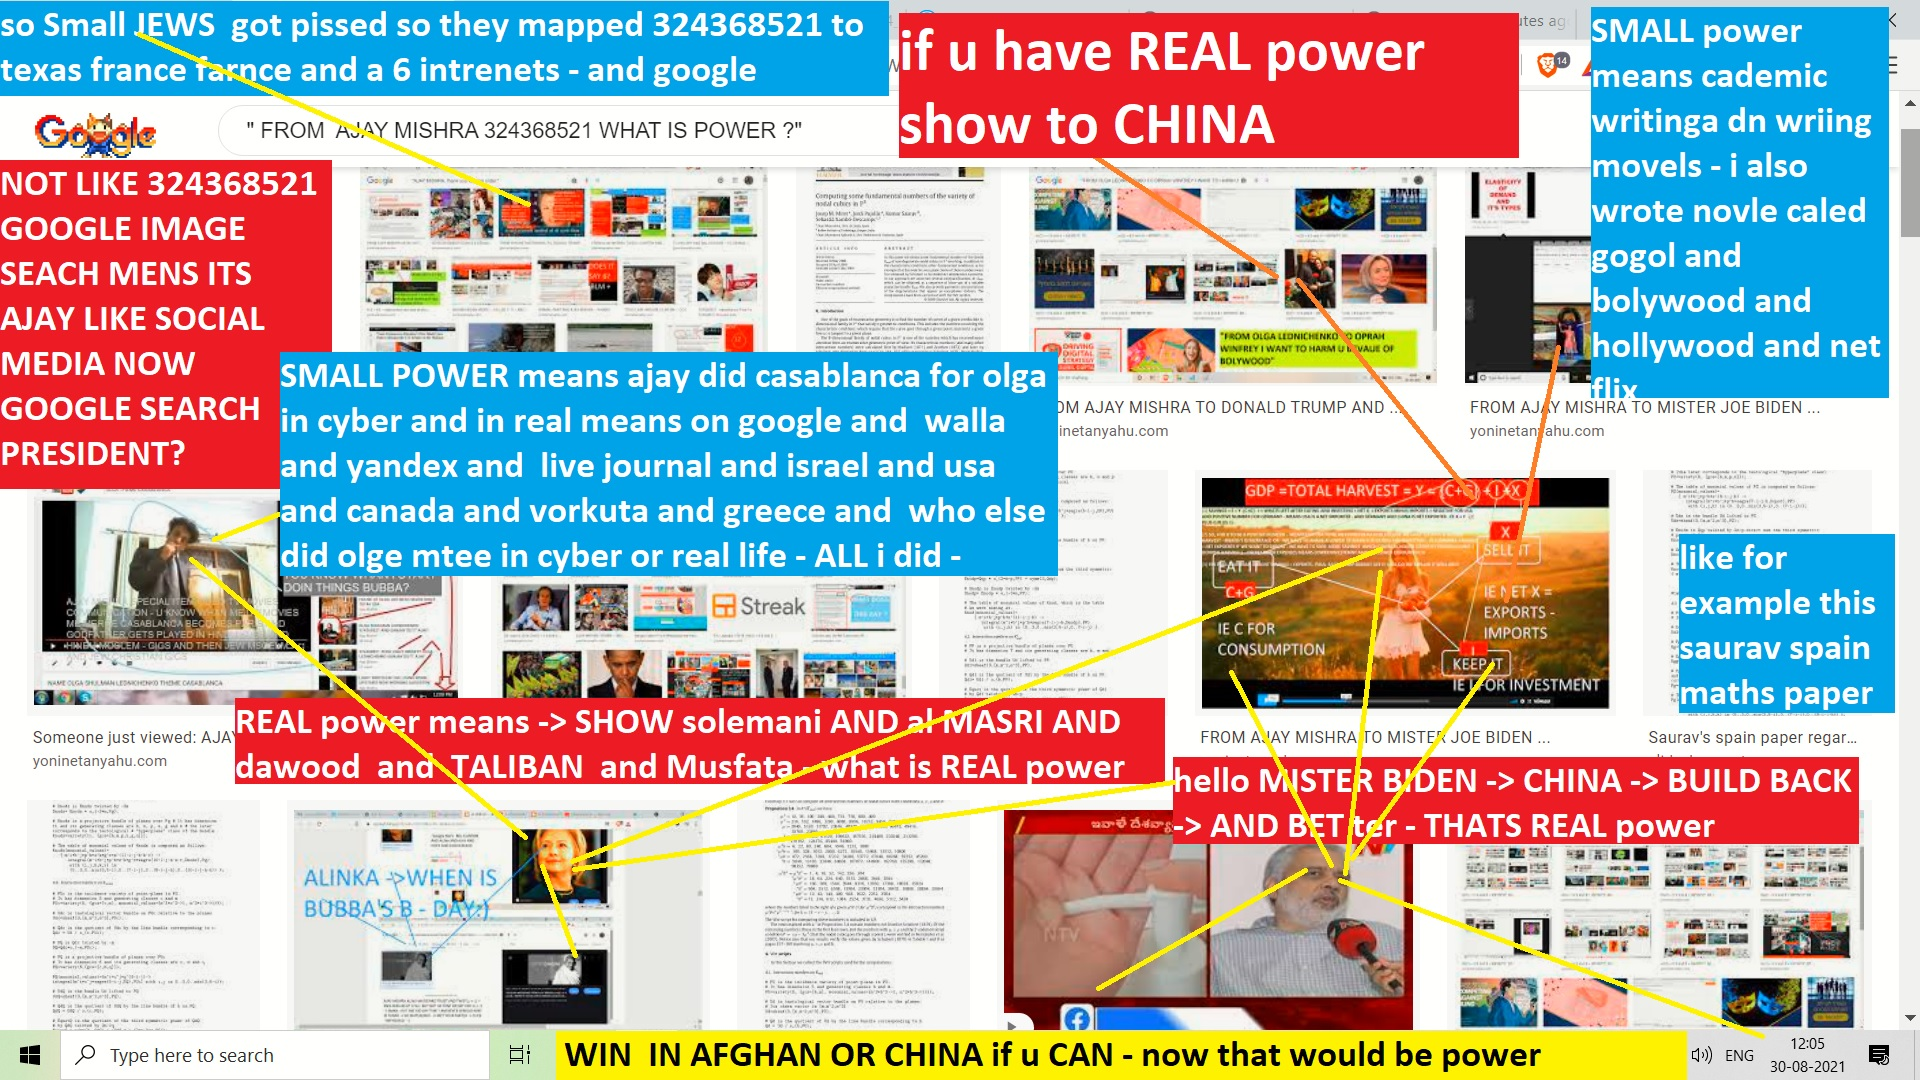 AJAY MISHAR ALINA MATSENKO THIS IS EXAMPLE FO REAL POWER - AND CHALLENGE TO SHOW POWER IF U CAN I HAVE SHOWN SMALL POWER AS EXPRESED IN THESE IMAGES